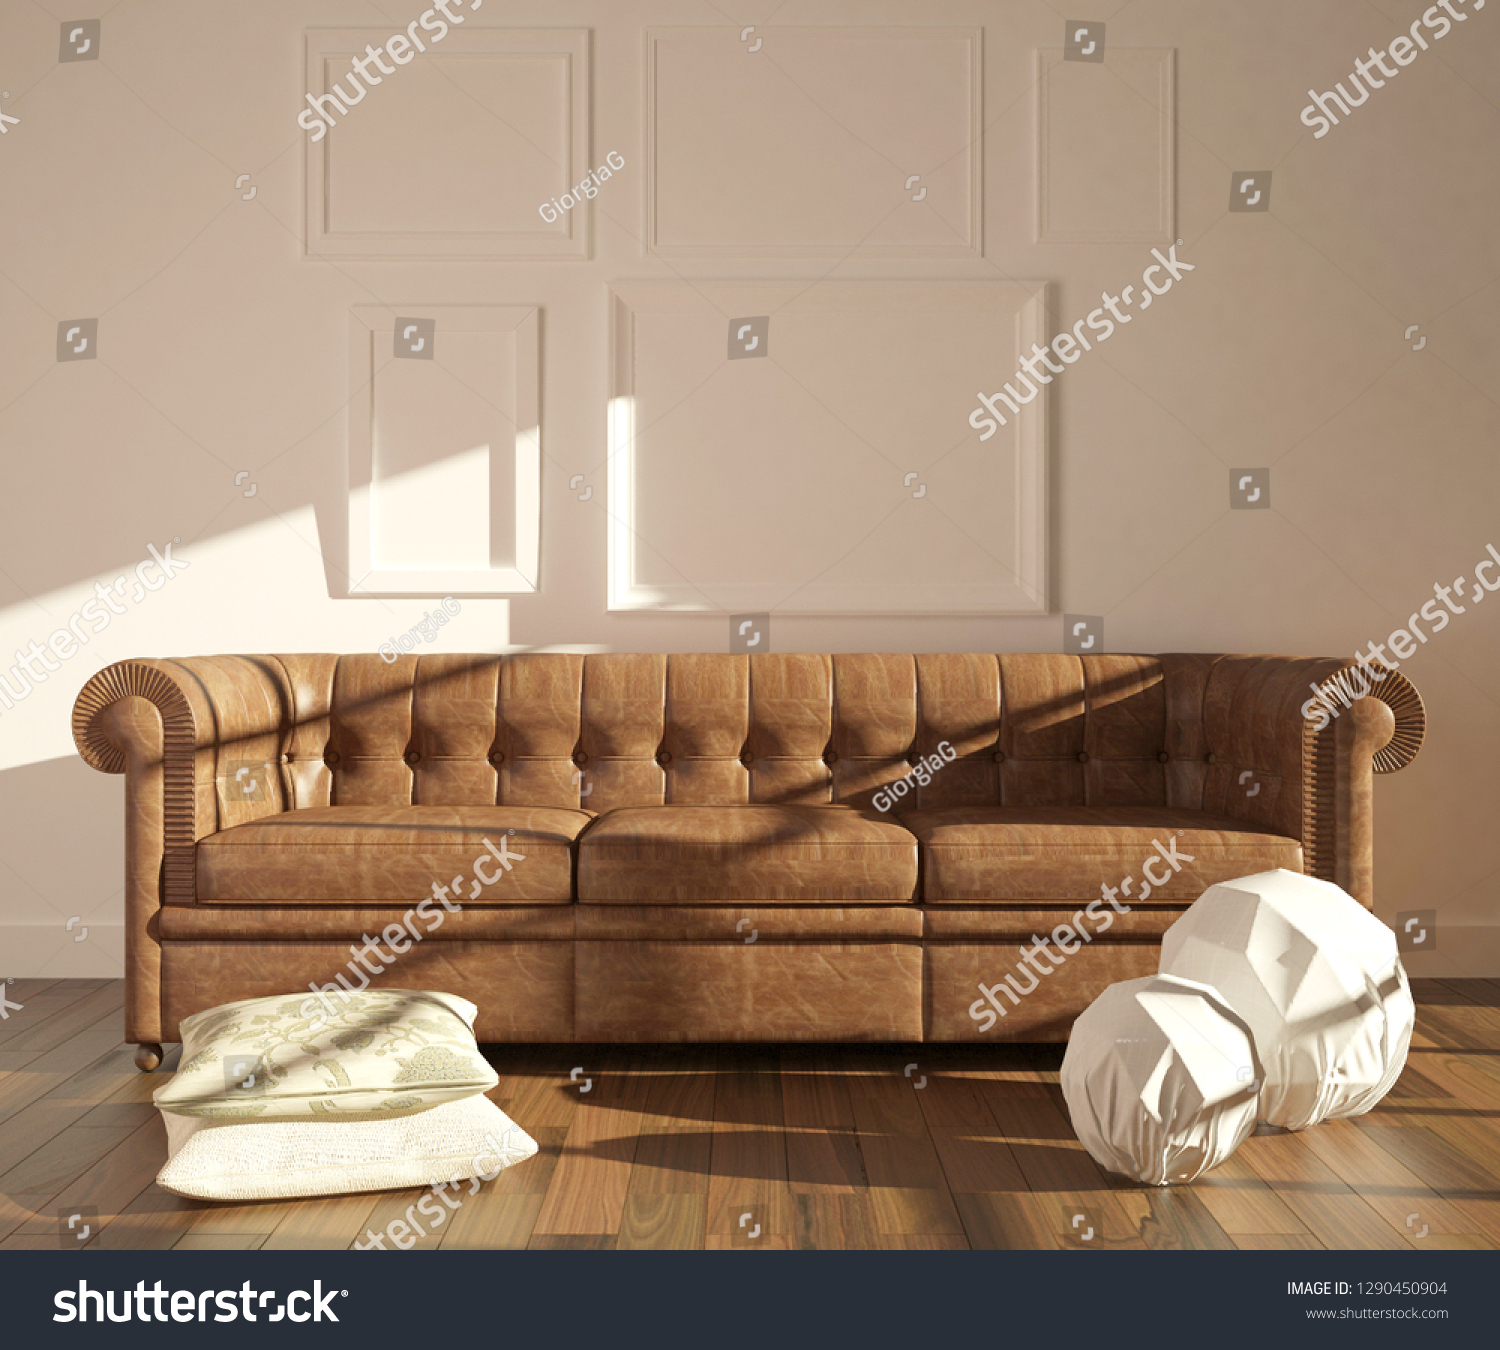 Modern interior with chesterfield sofa pillows and lamps on the parquet floor empty frames